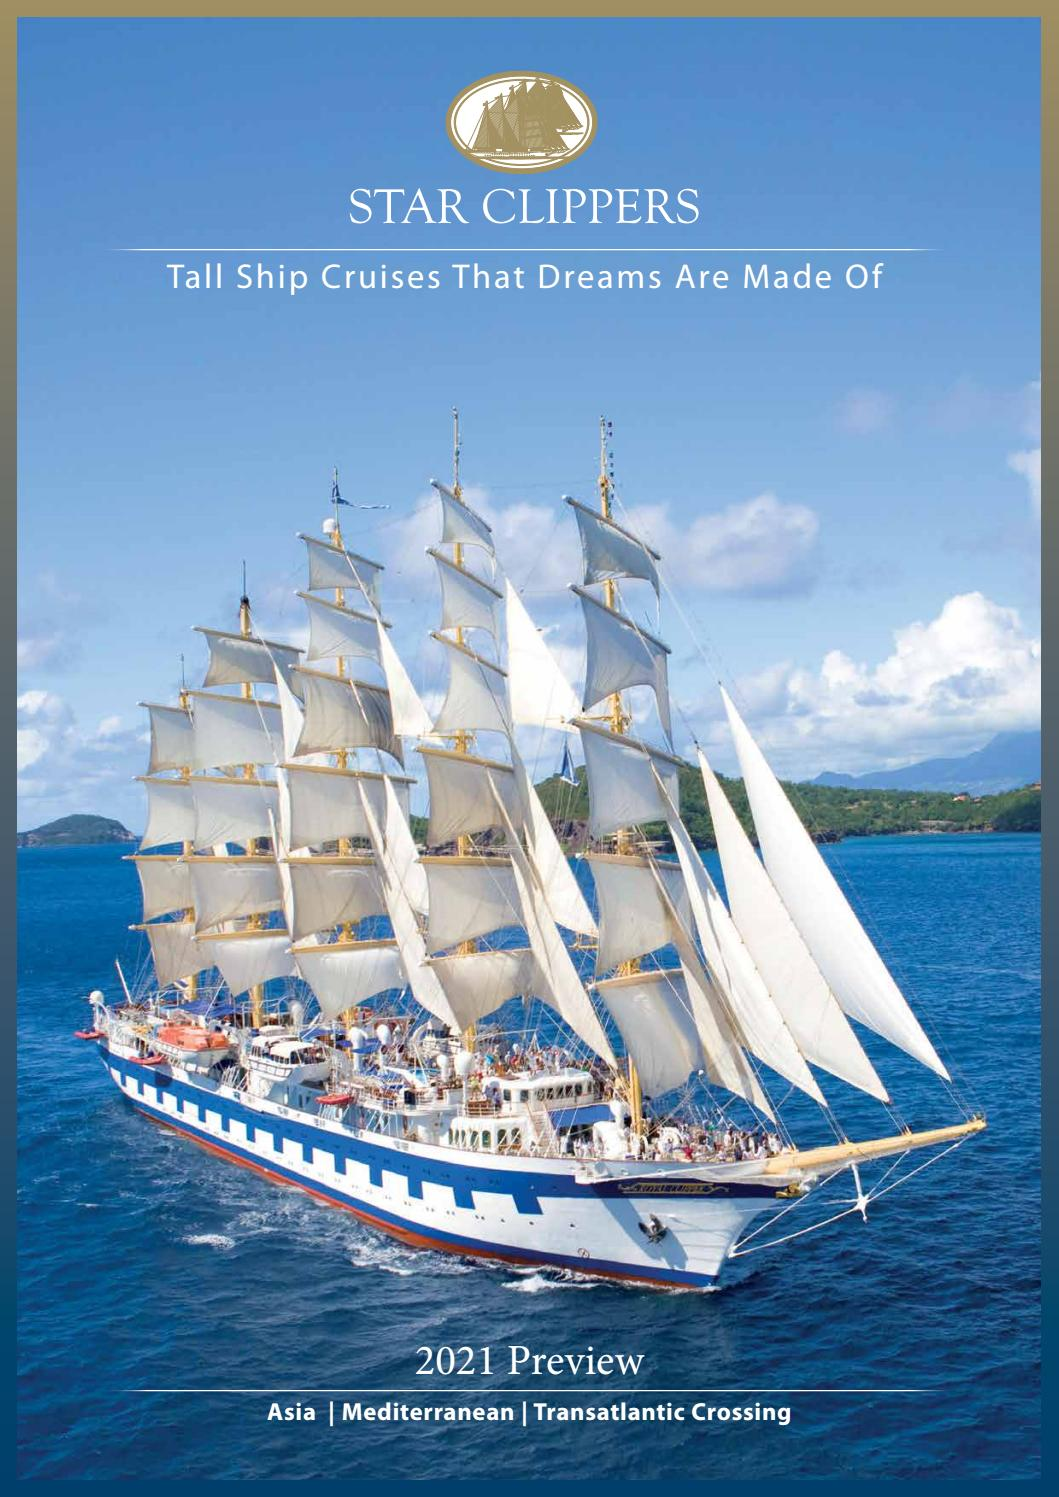 Star Clippers 2021 Preview Brochure